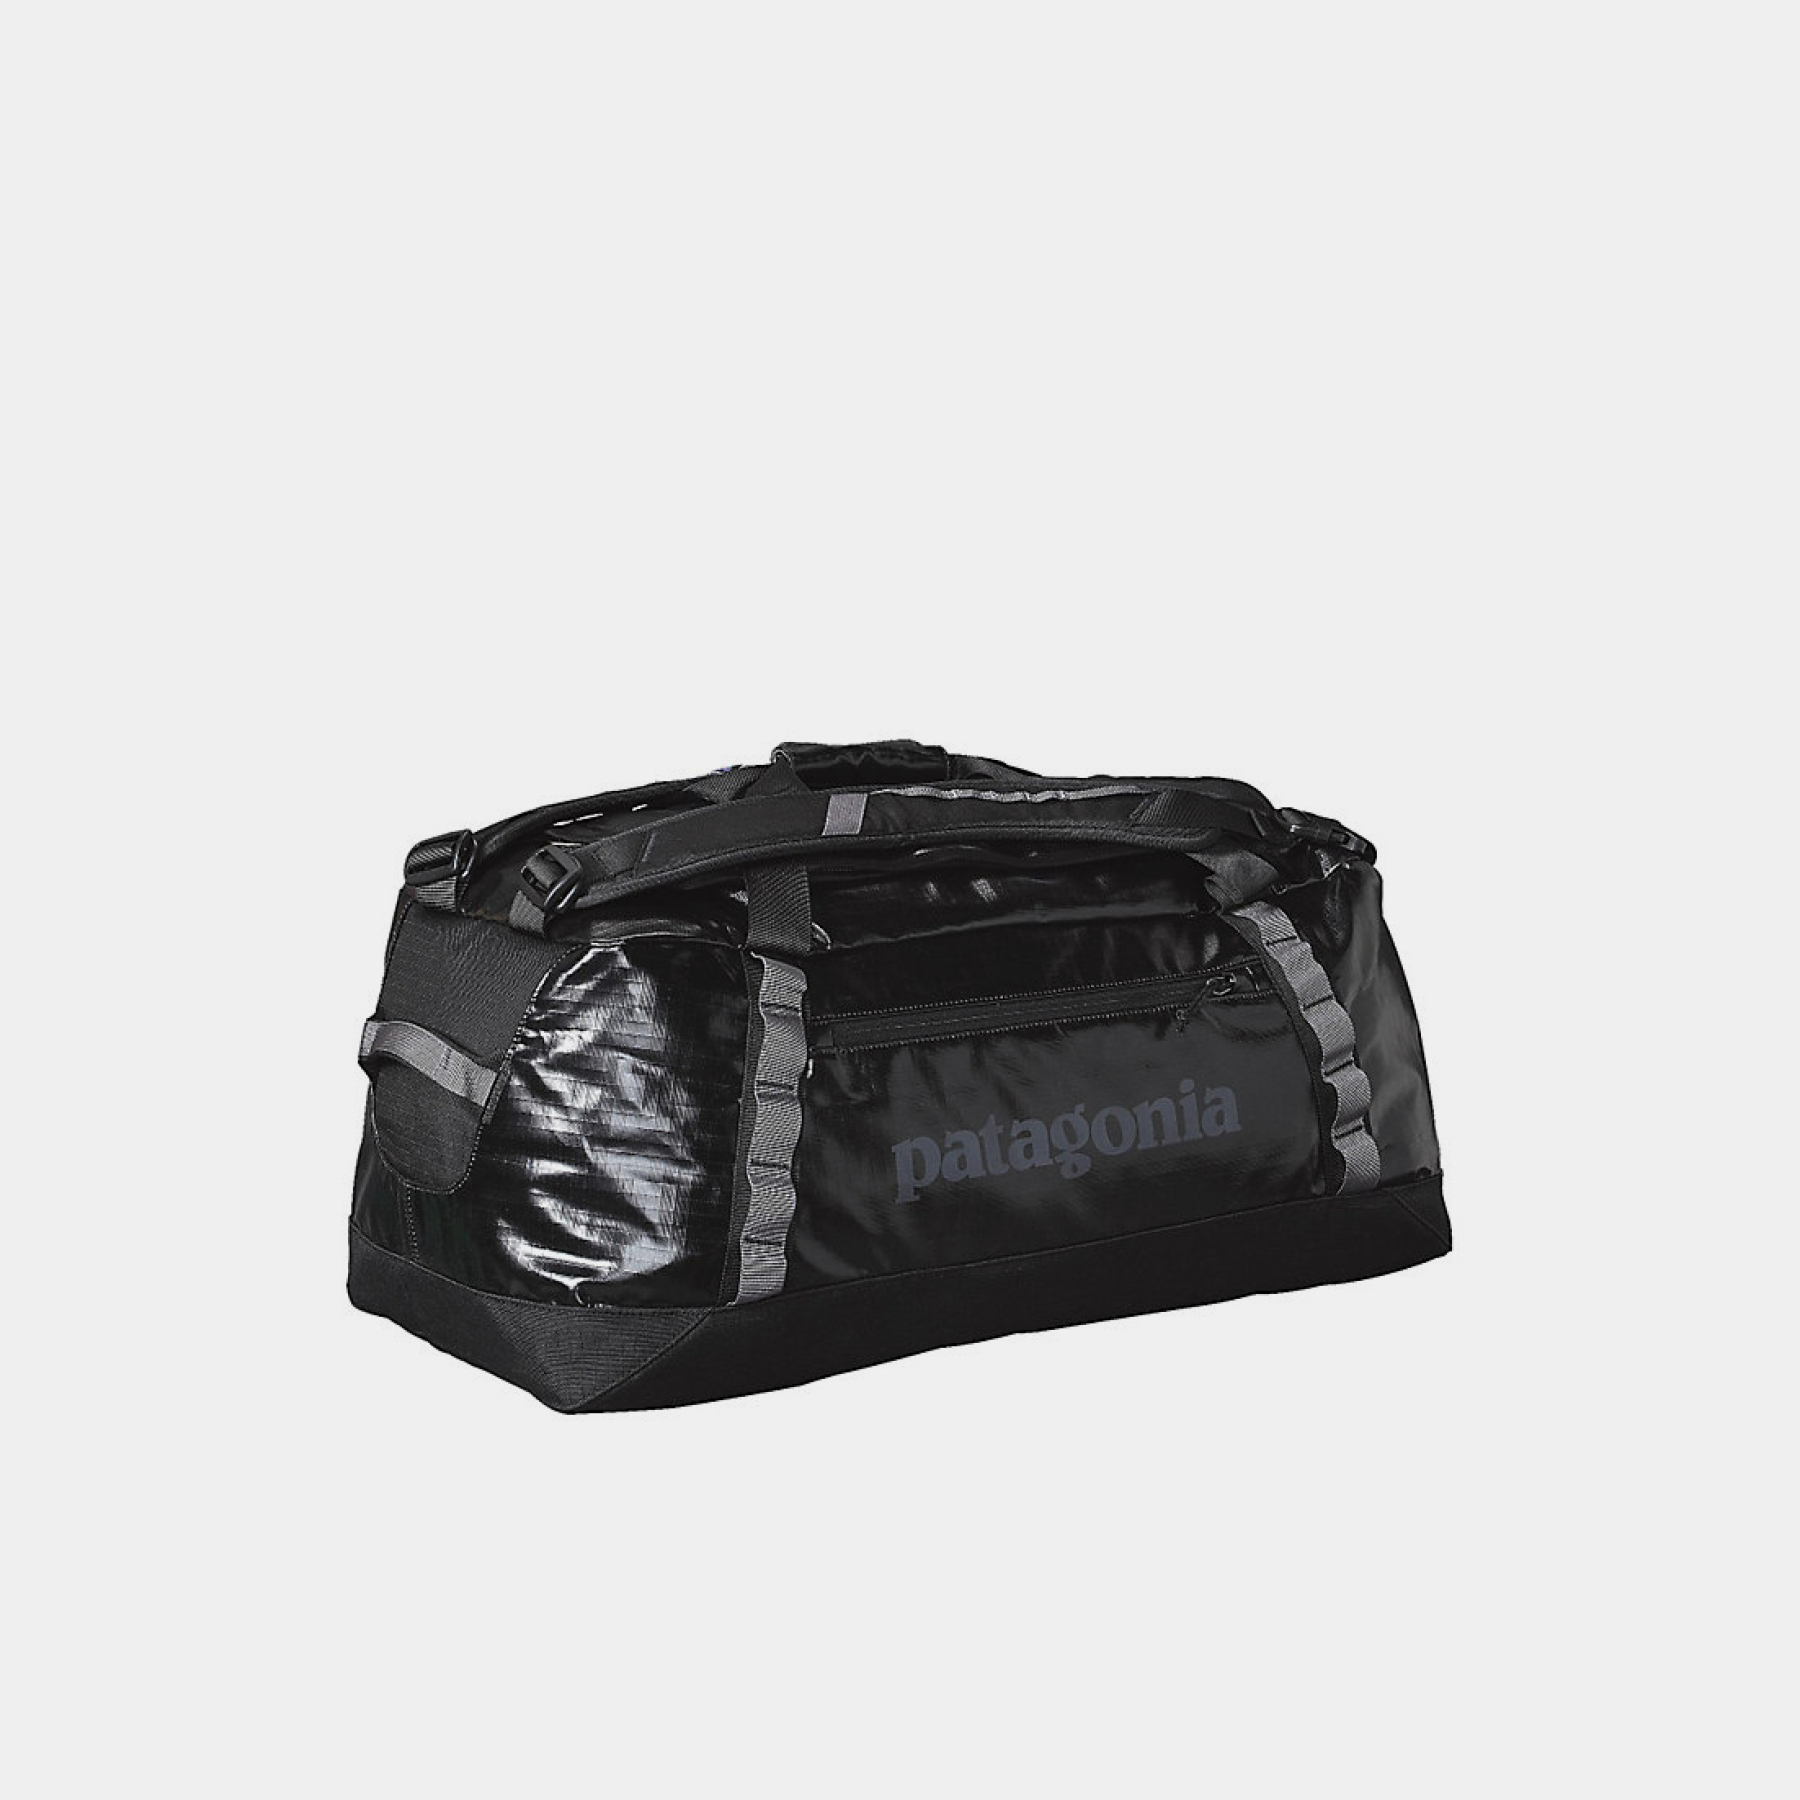 ALL-SORTS-OF-PATAGONIA-DUFFEL2